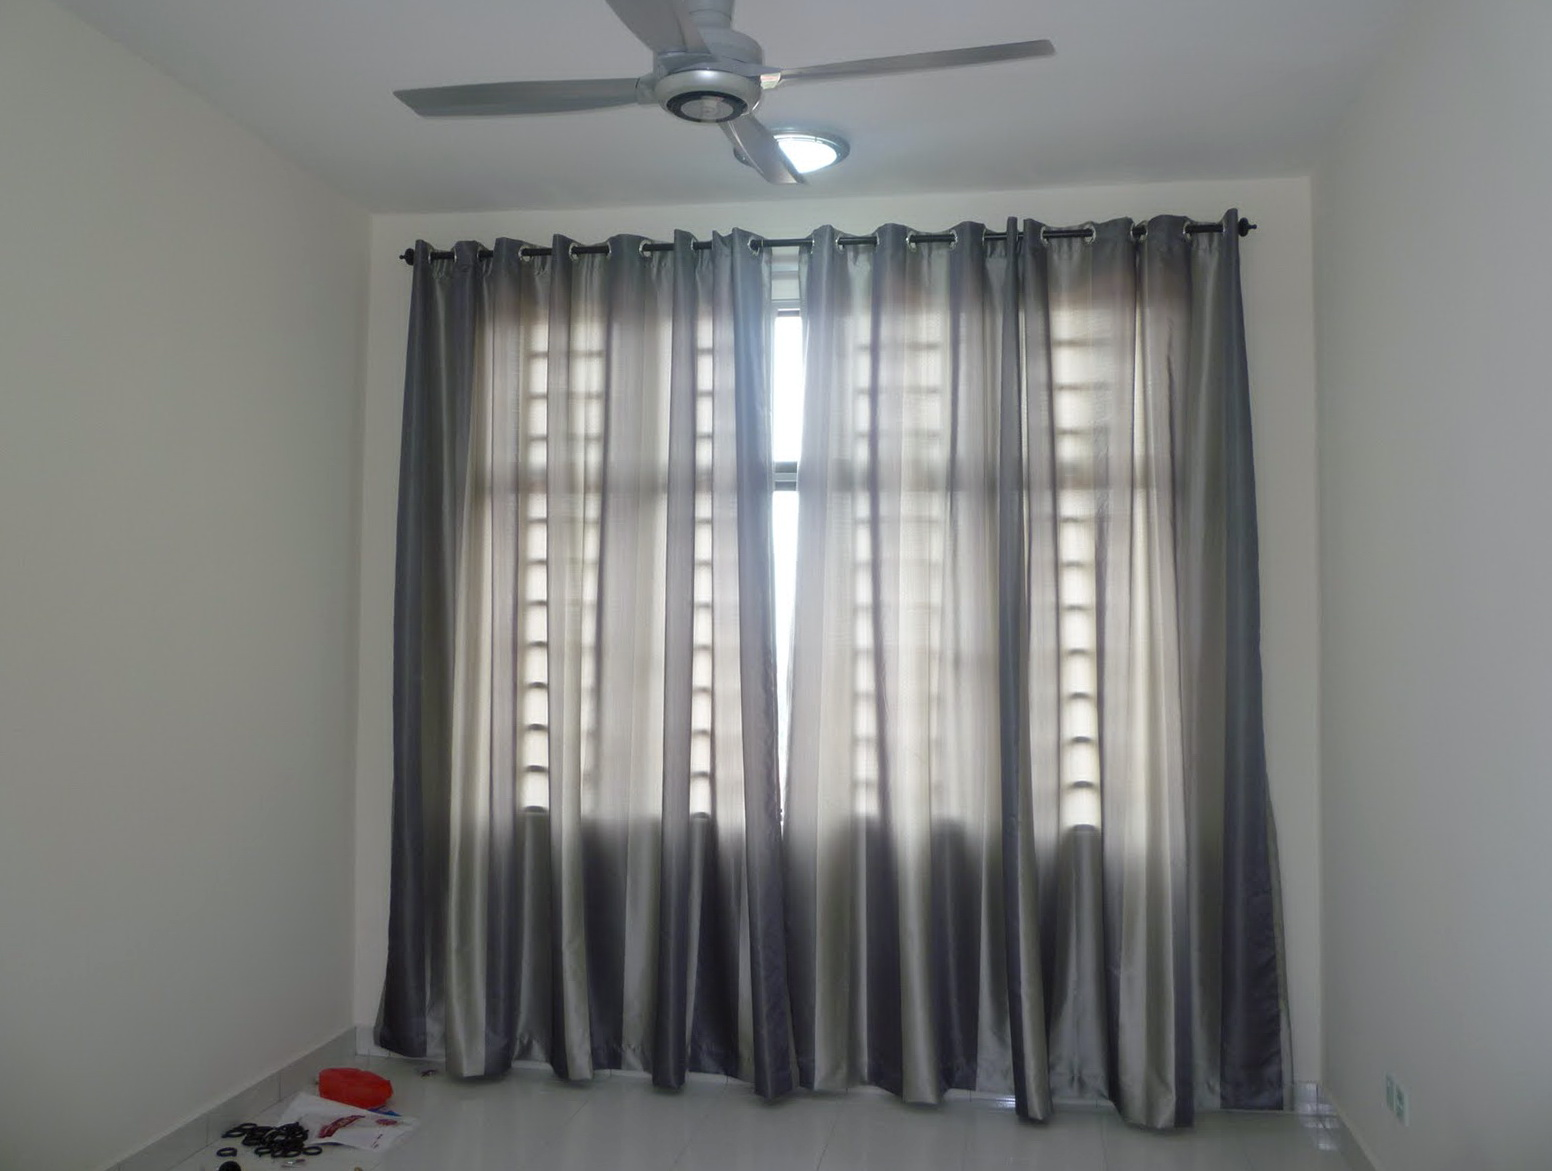 Curtain Rods Ikea Malaysia Home Design Ideas